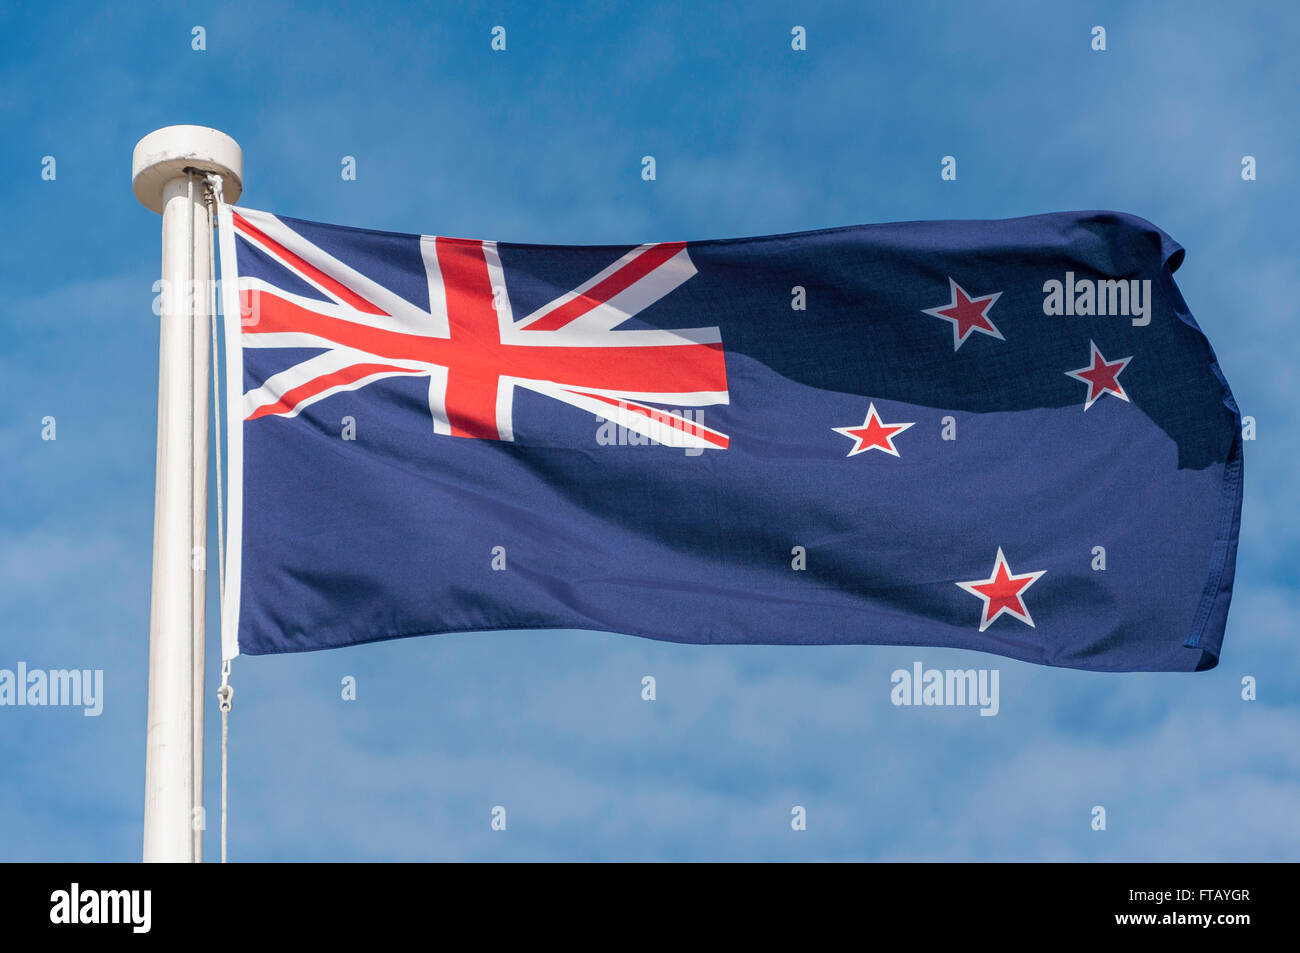 New Zealand flag flying, Redcliffs, Christchurch, Canterbury Province, New Zealand - Stock Image